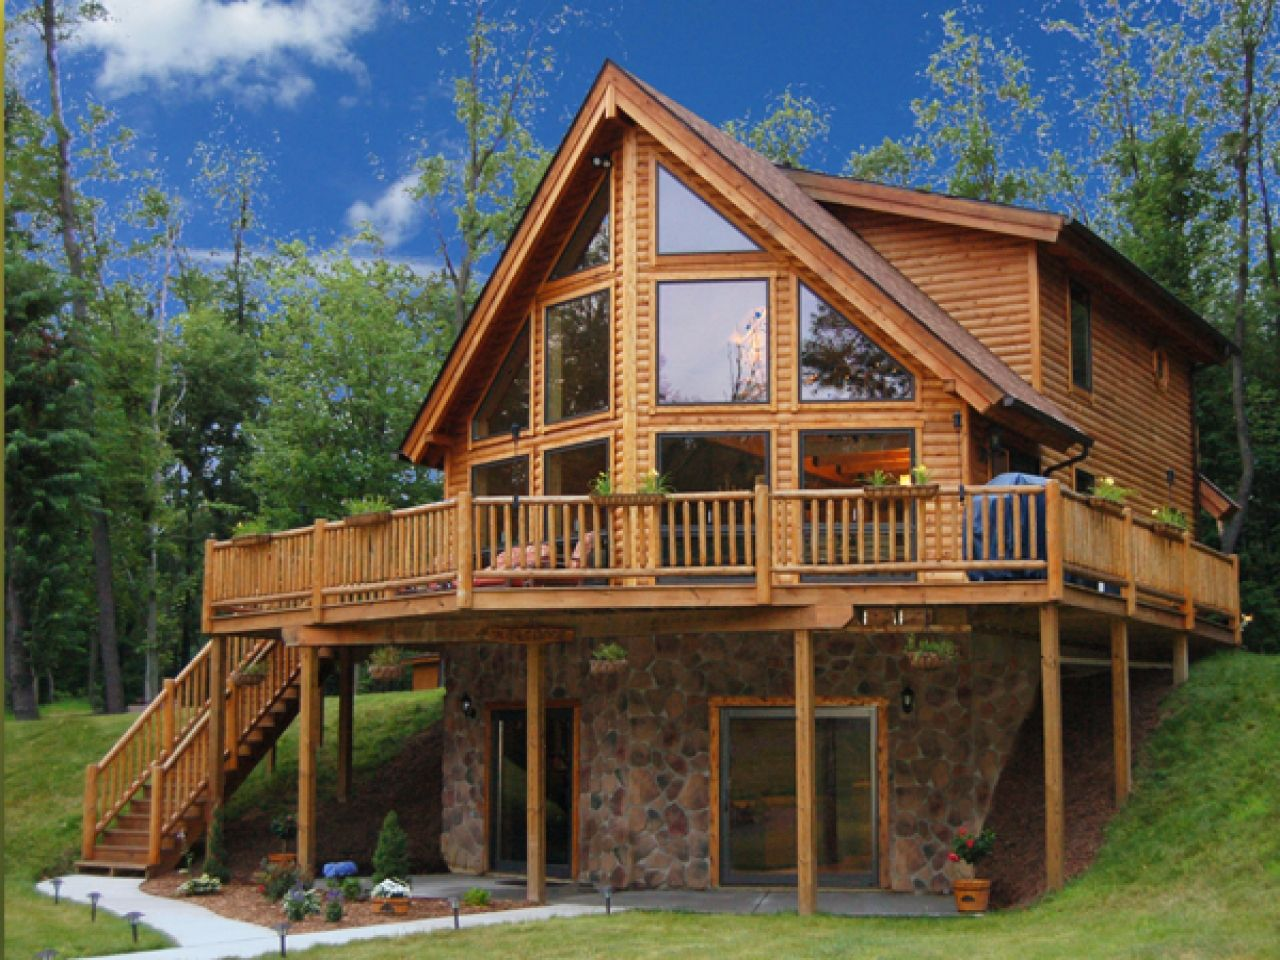 Photo of Log Cabin Lake House Plans Beautiful Log Cabins On Lakes … cabin log pla…